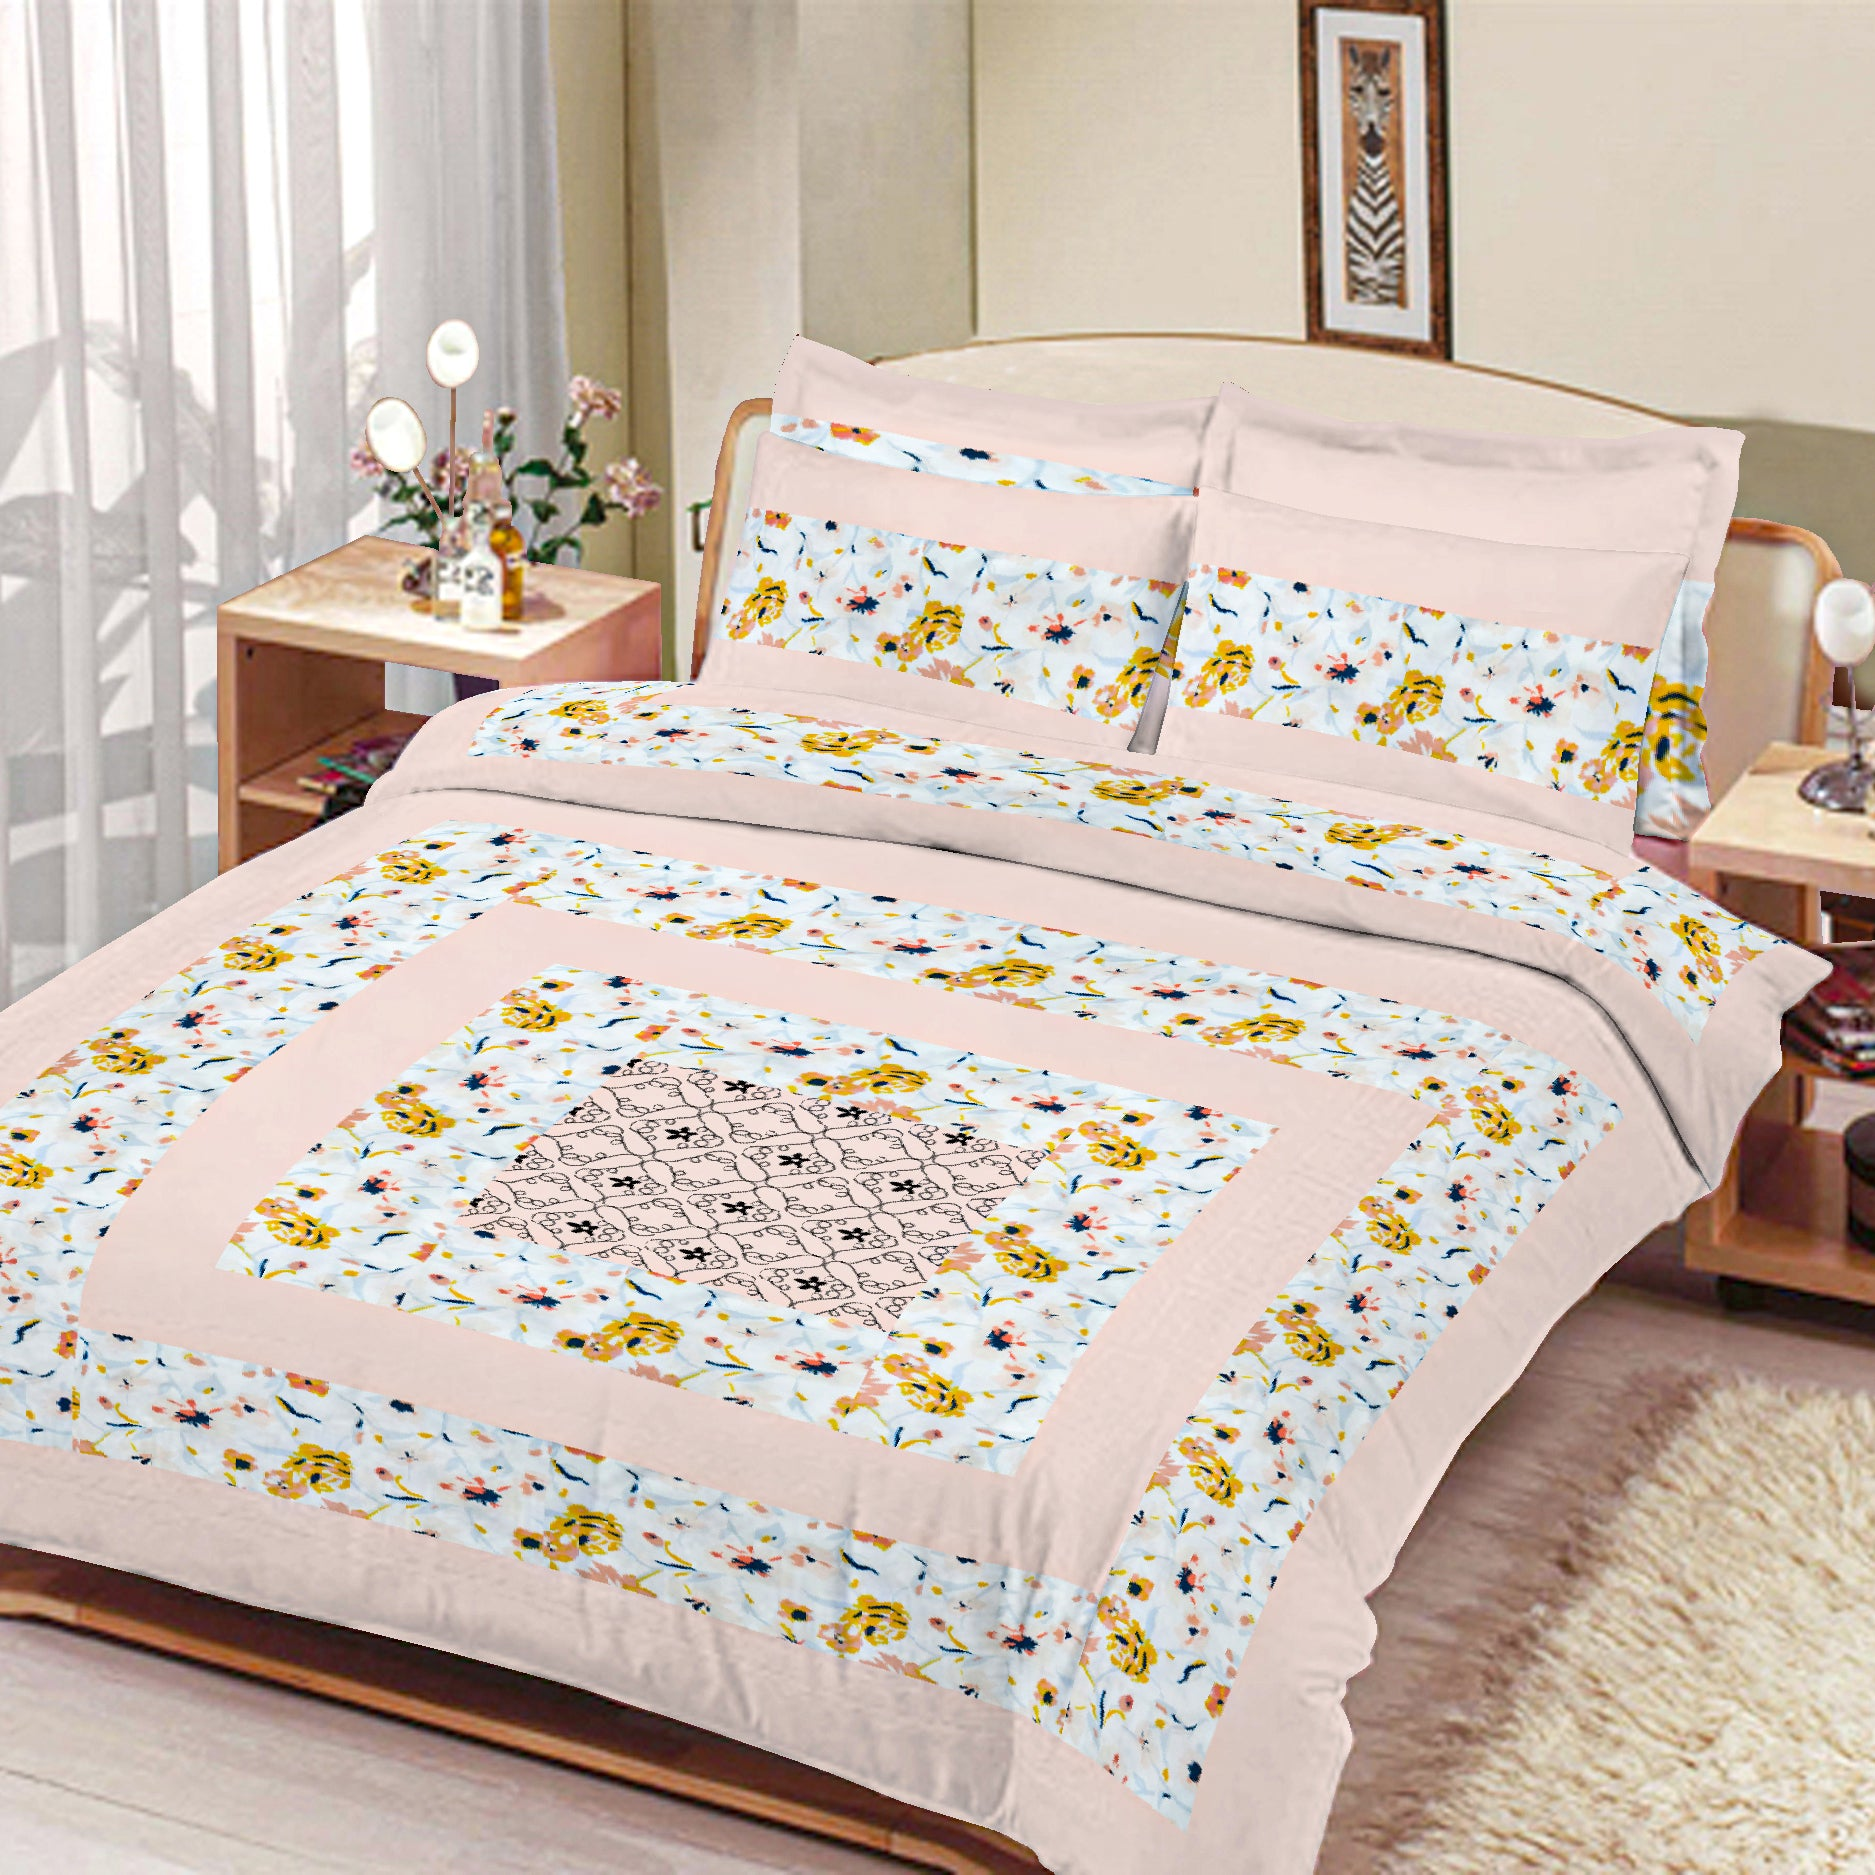 Premium Quality Cotton Sutton Double Bed Sheet & Pillow Set-NA11307